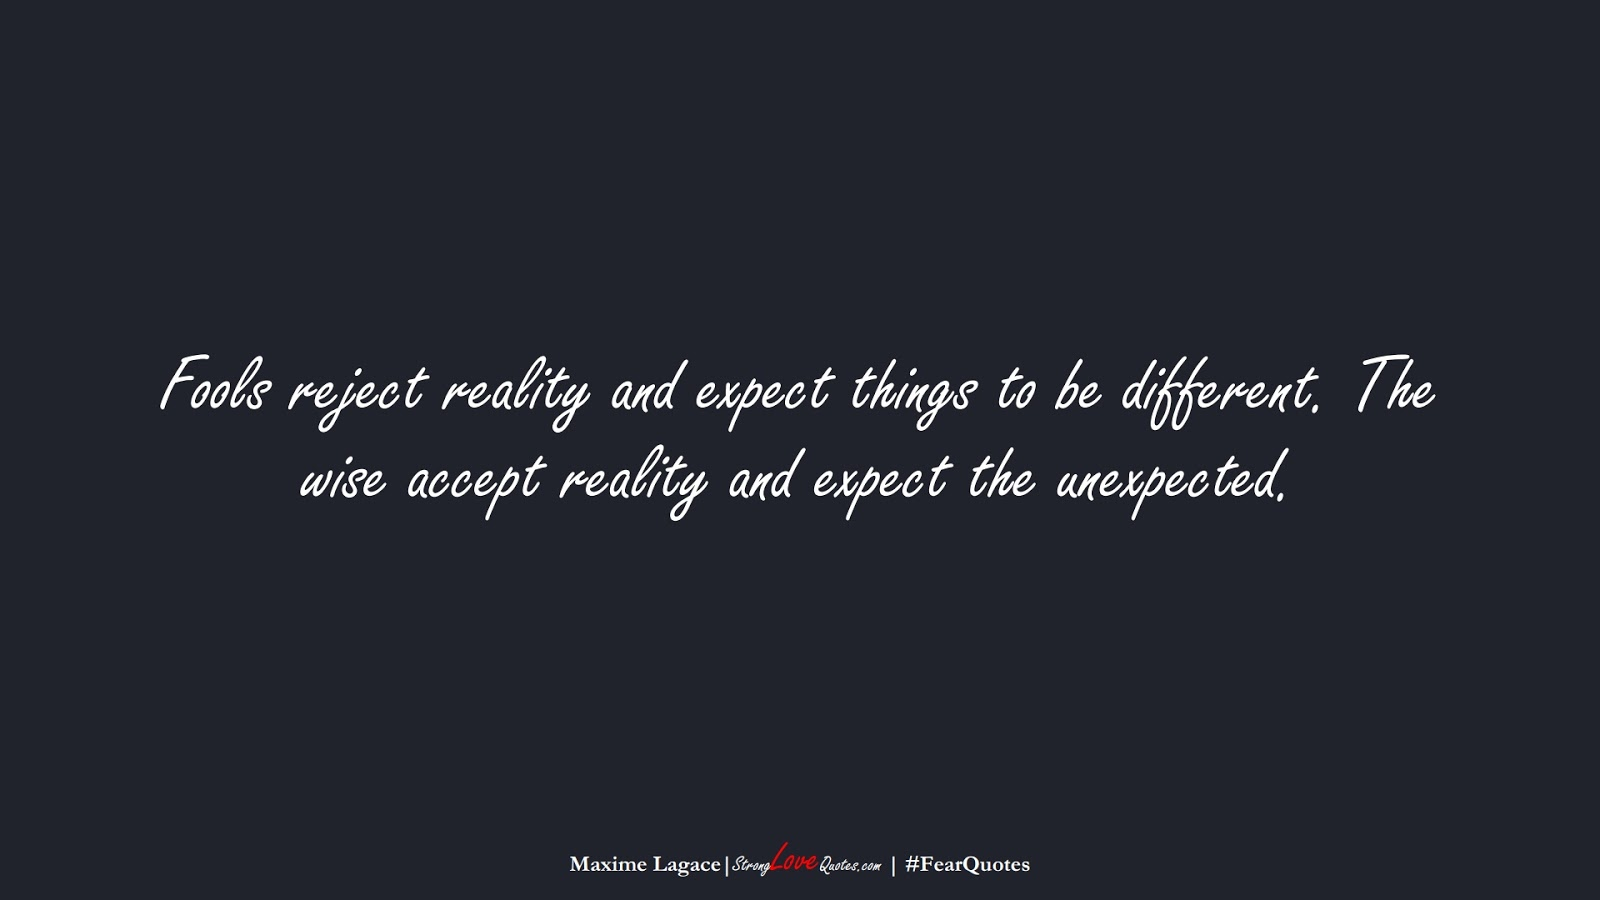 Fools reject reality and expect things to be different. The wise accept reality and expect the unexpected. (Maxime Lagace);  #FearQuotes